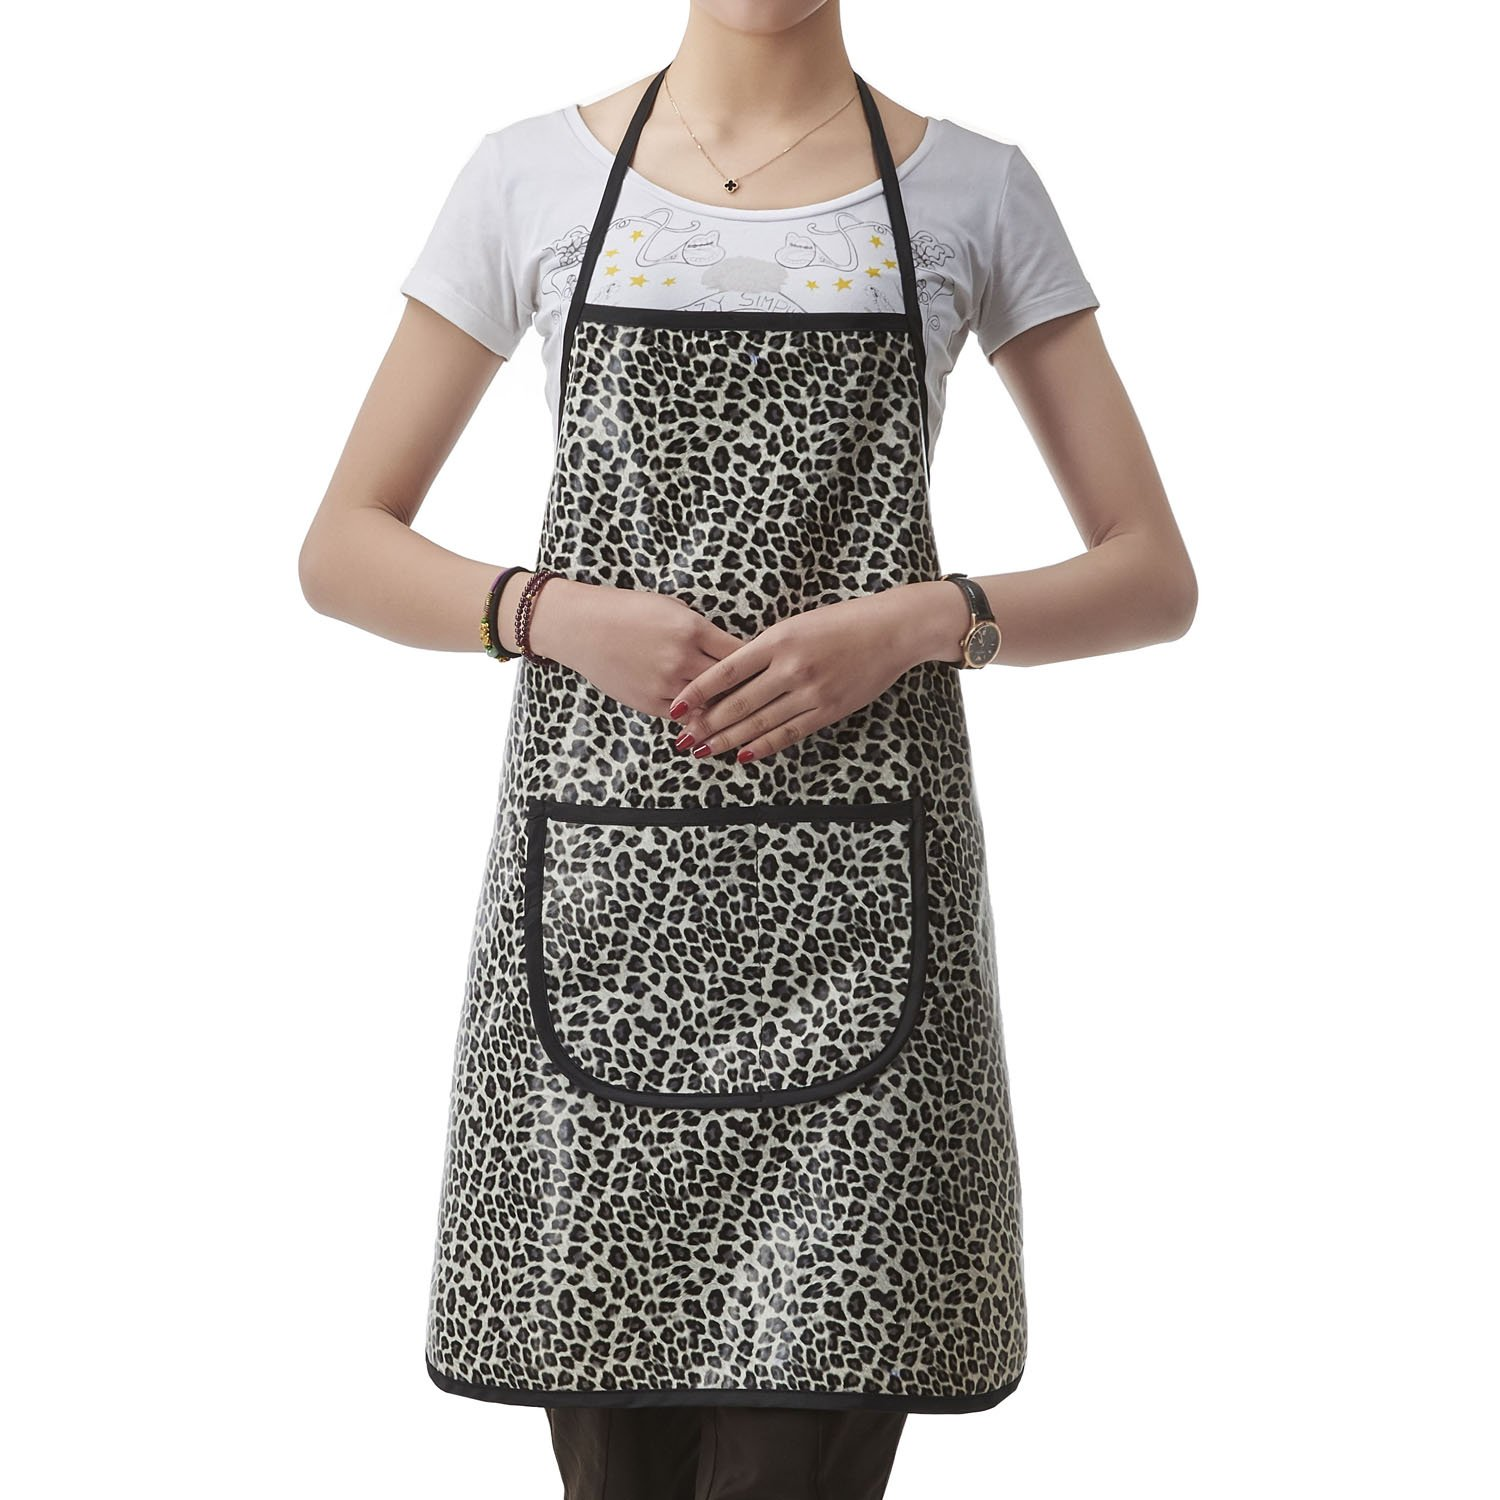 Colorfulife Professional Salon Apron Hair Stylist Hairdressing Dyeing Wrap Cape, Leopard Pattern Adjustable Barber Aprons with 2 Pockets (White) beautifulove